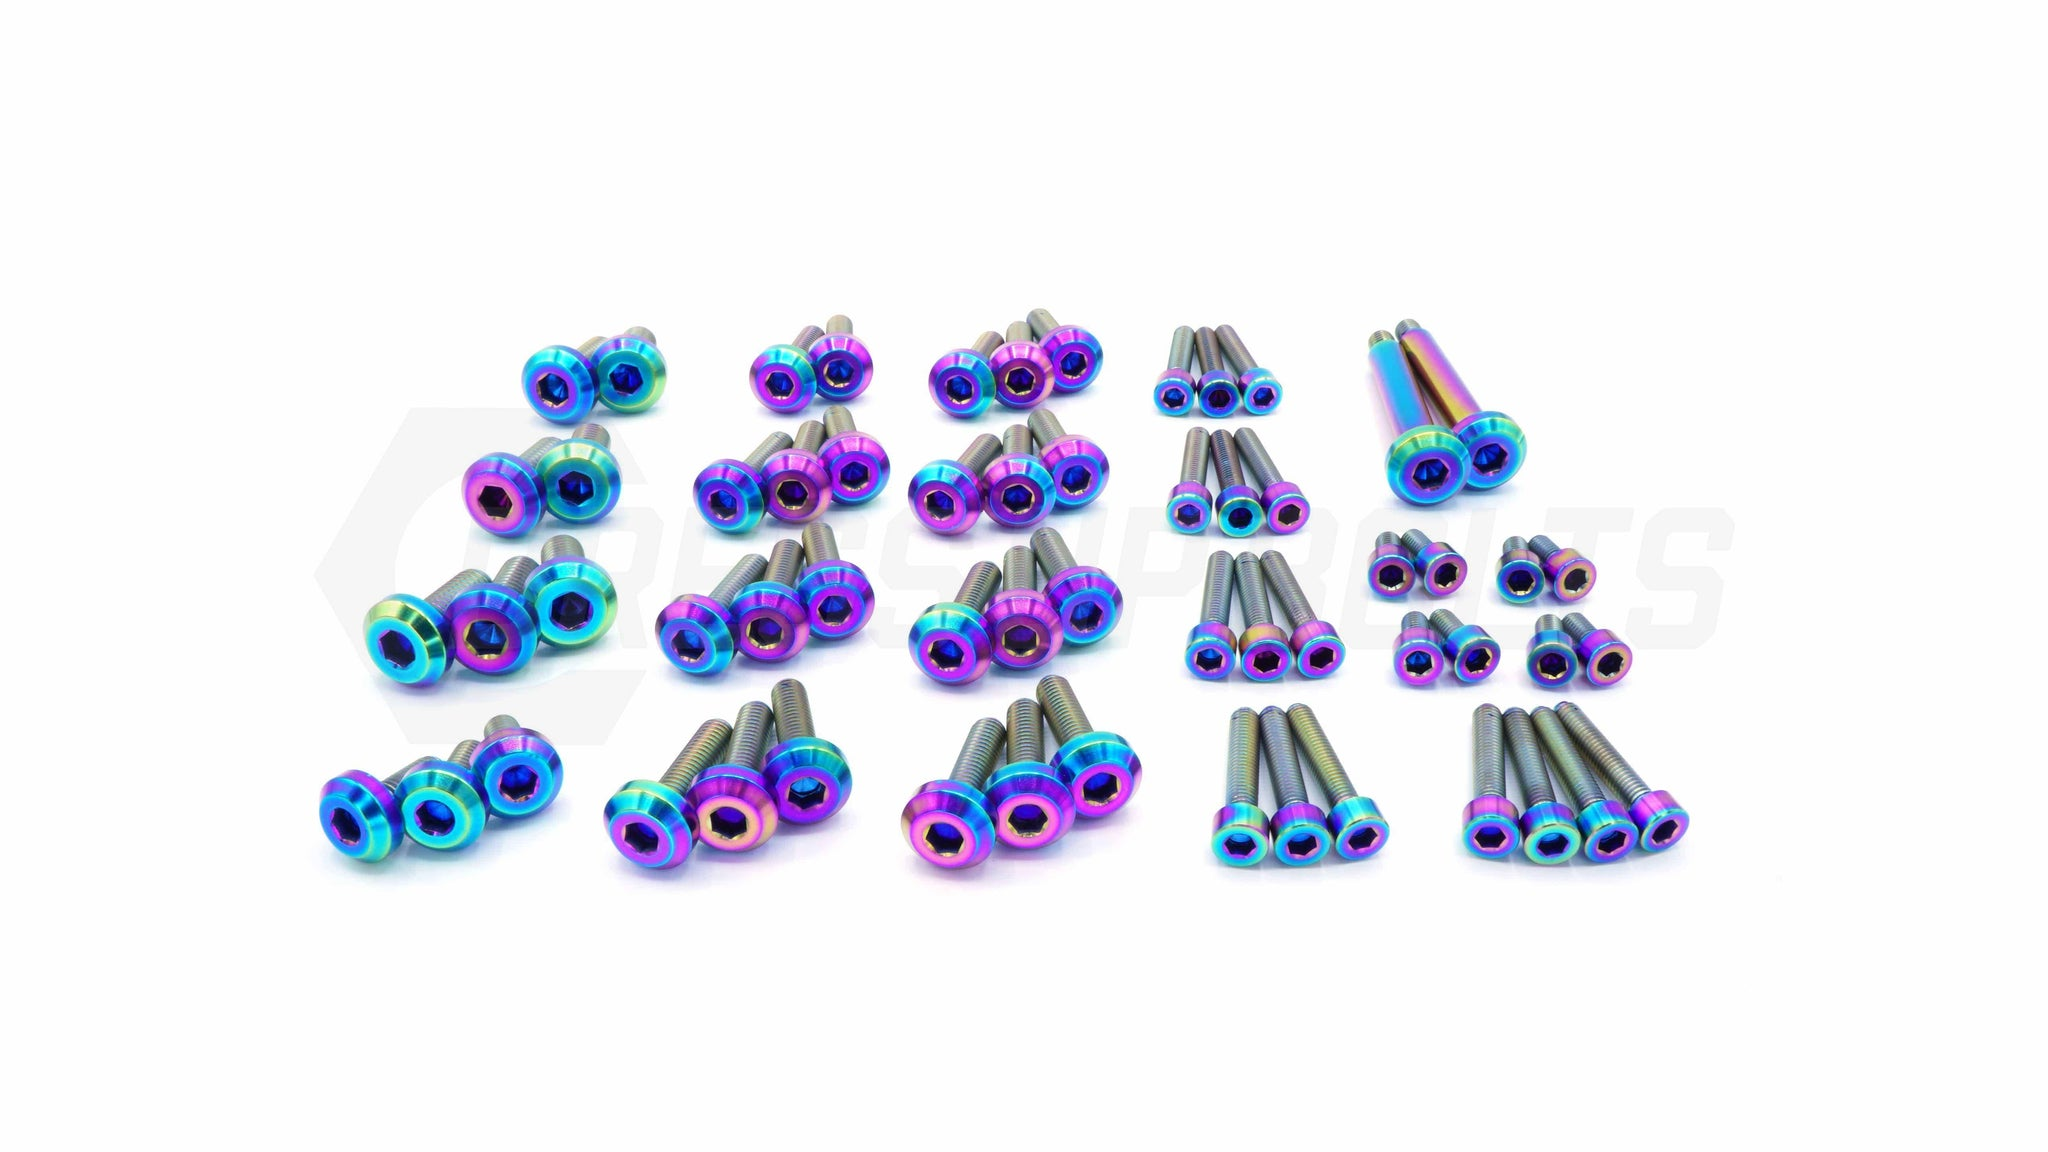 Dress Up Bolts Stage 3 Titanium Hardware Engine Kit - RB25 Engine - DressUpBolts.com